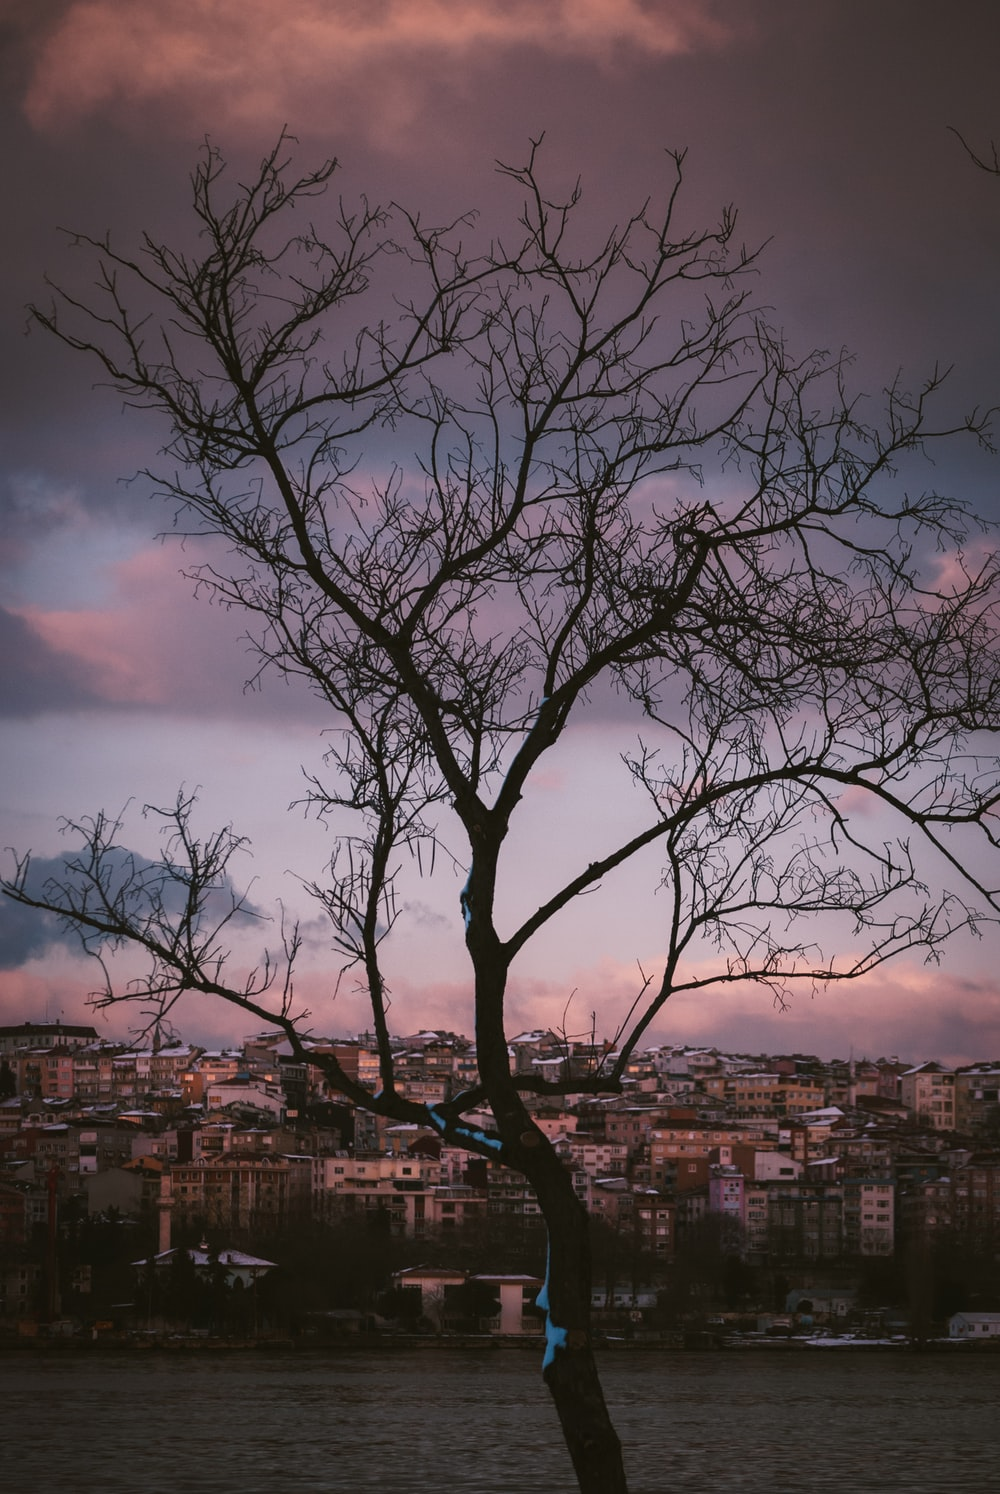 bare tree near city buildings under cloudy sky during daytime